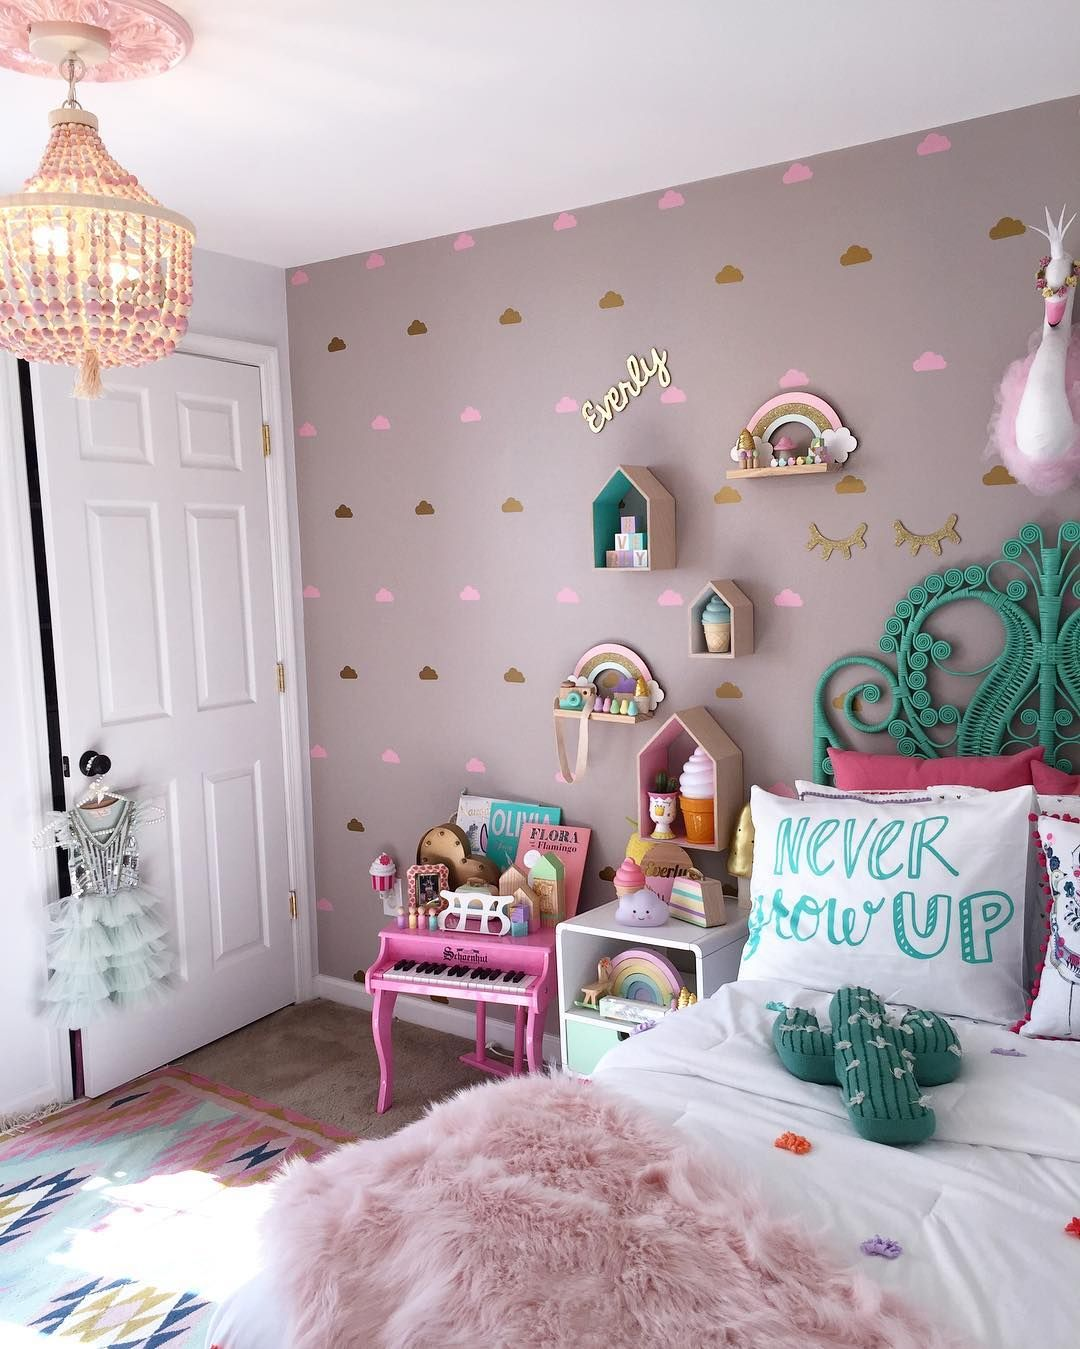 Magical place for my sweet little girl💕 @mrsirwin is part of Master bed room furniture -